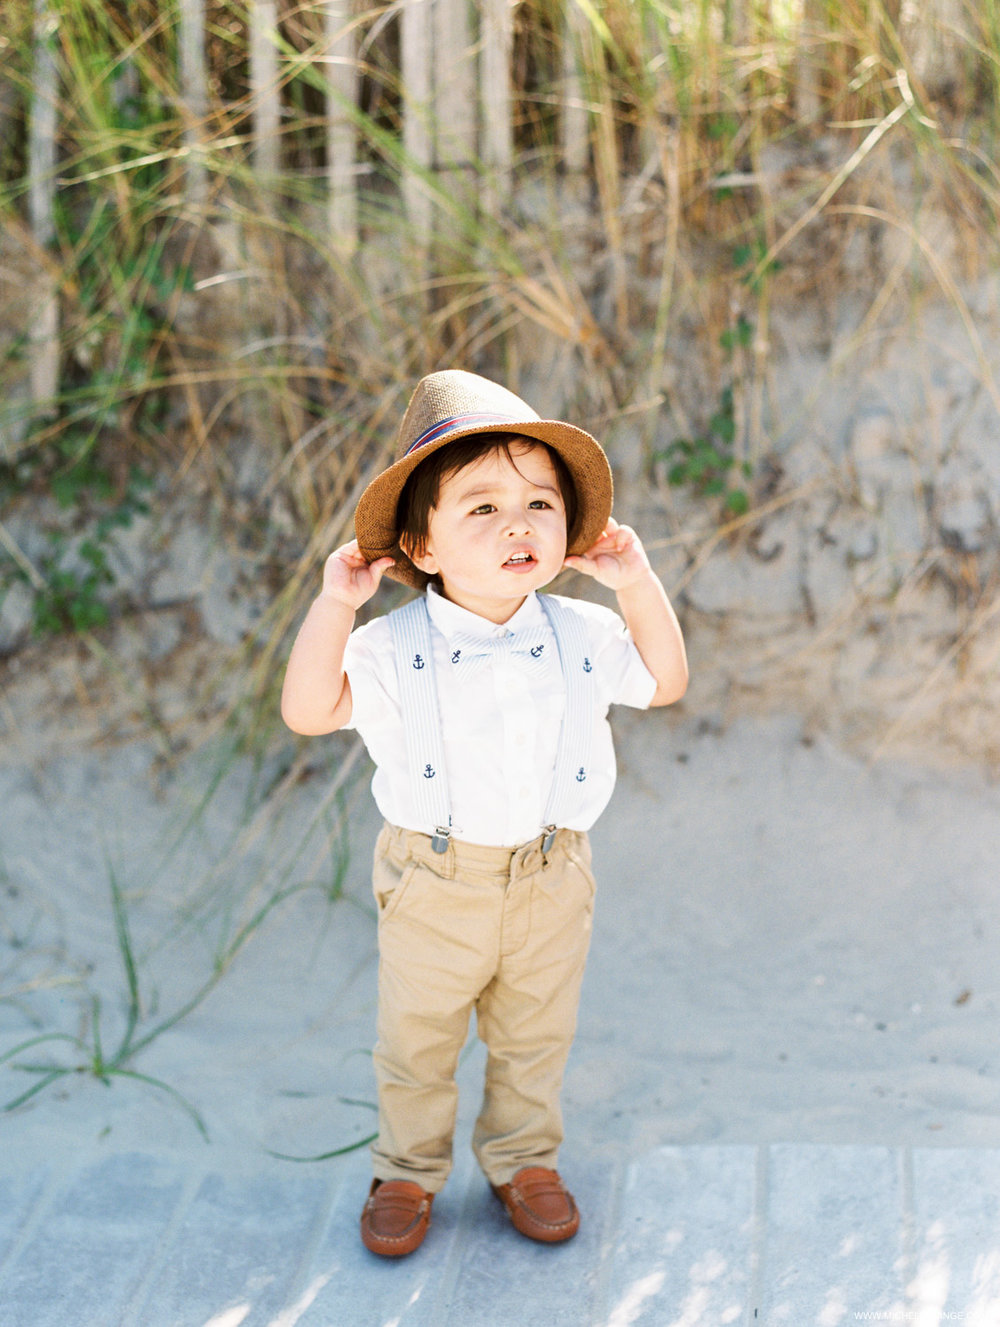 NJ Wedding Photographer at Hotel Icona in Cape May with a cute ring bearer outfit